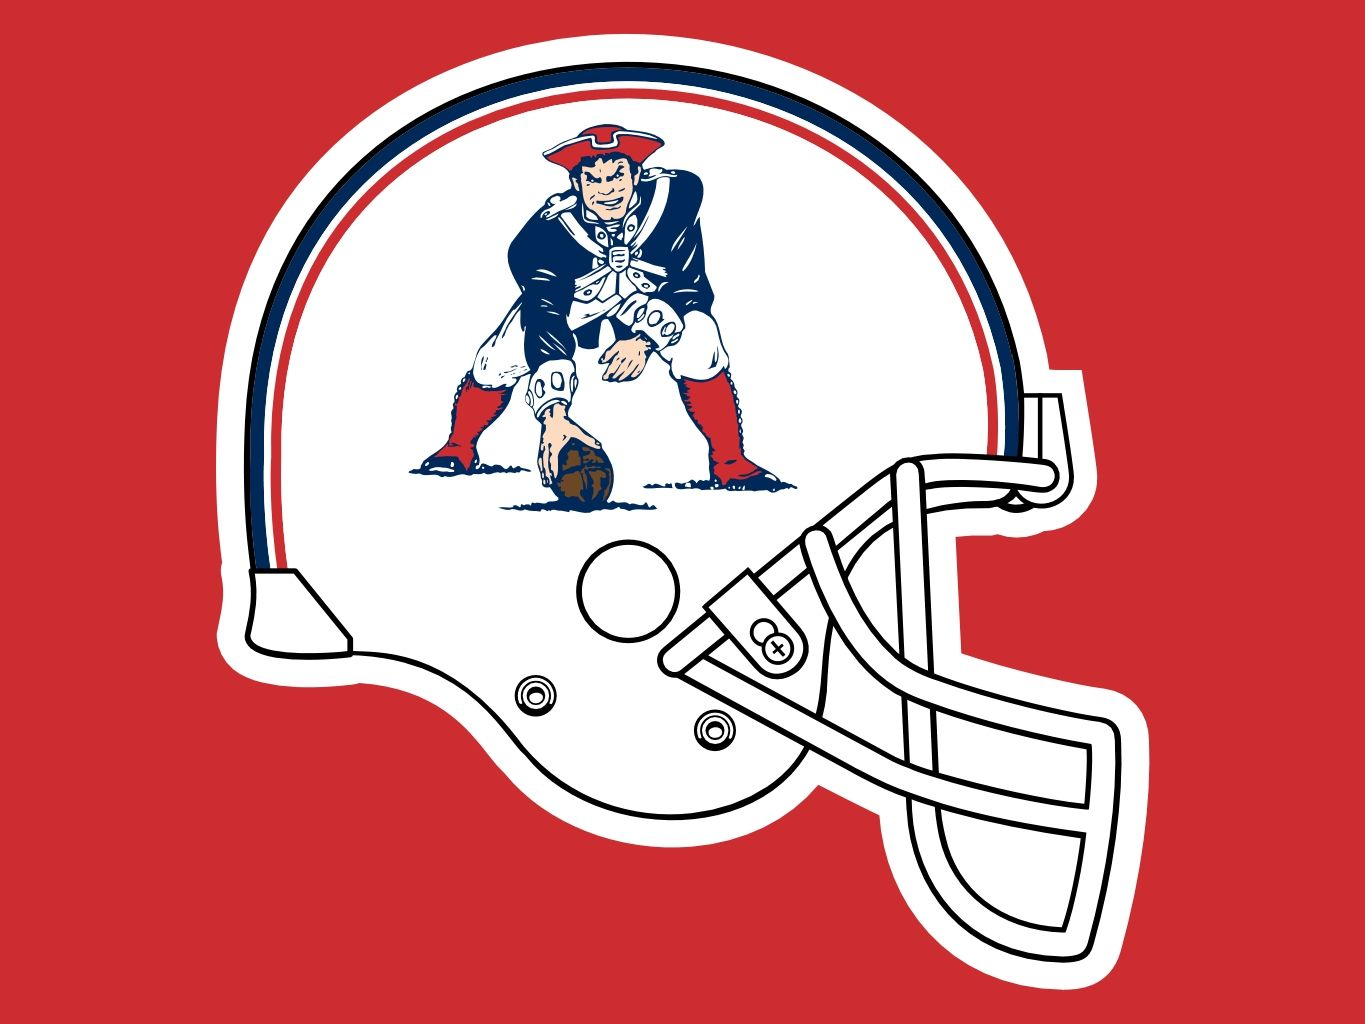 new england patriots logo google search patriots logos